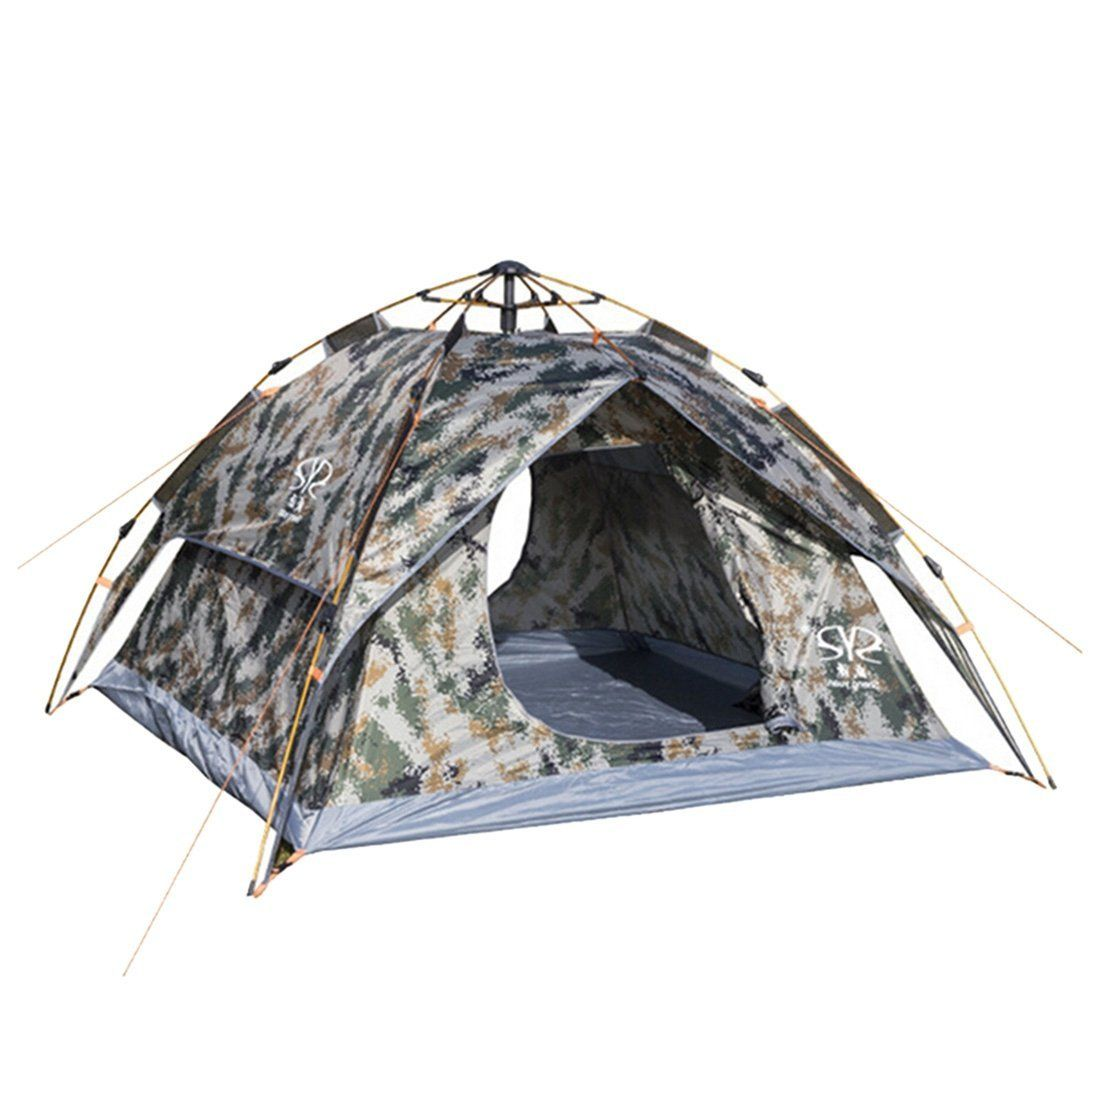 Qianle 4 Person Double Door Pop Up Instant Tent Travel Outdoor C&ing Camo u003eu003e Canu0027t believe itu0027s available see it now  Hiking tents  sc 1 st  Pinterest & Jiyaru Automatic Easy-Up Tent Double Layer 3-4 Person Outdoor ...